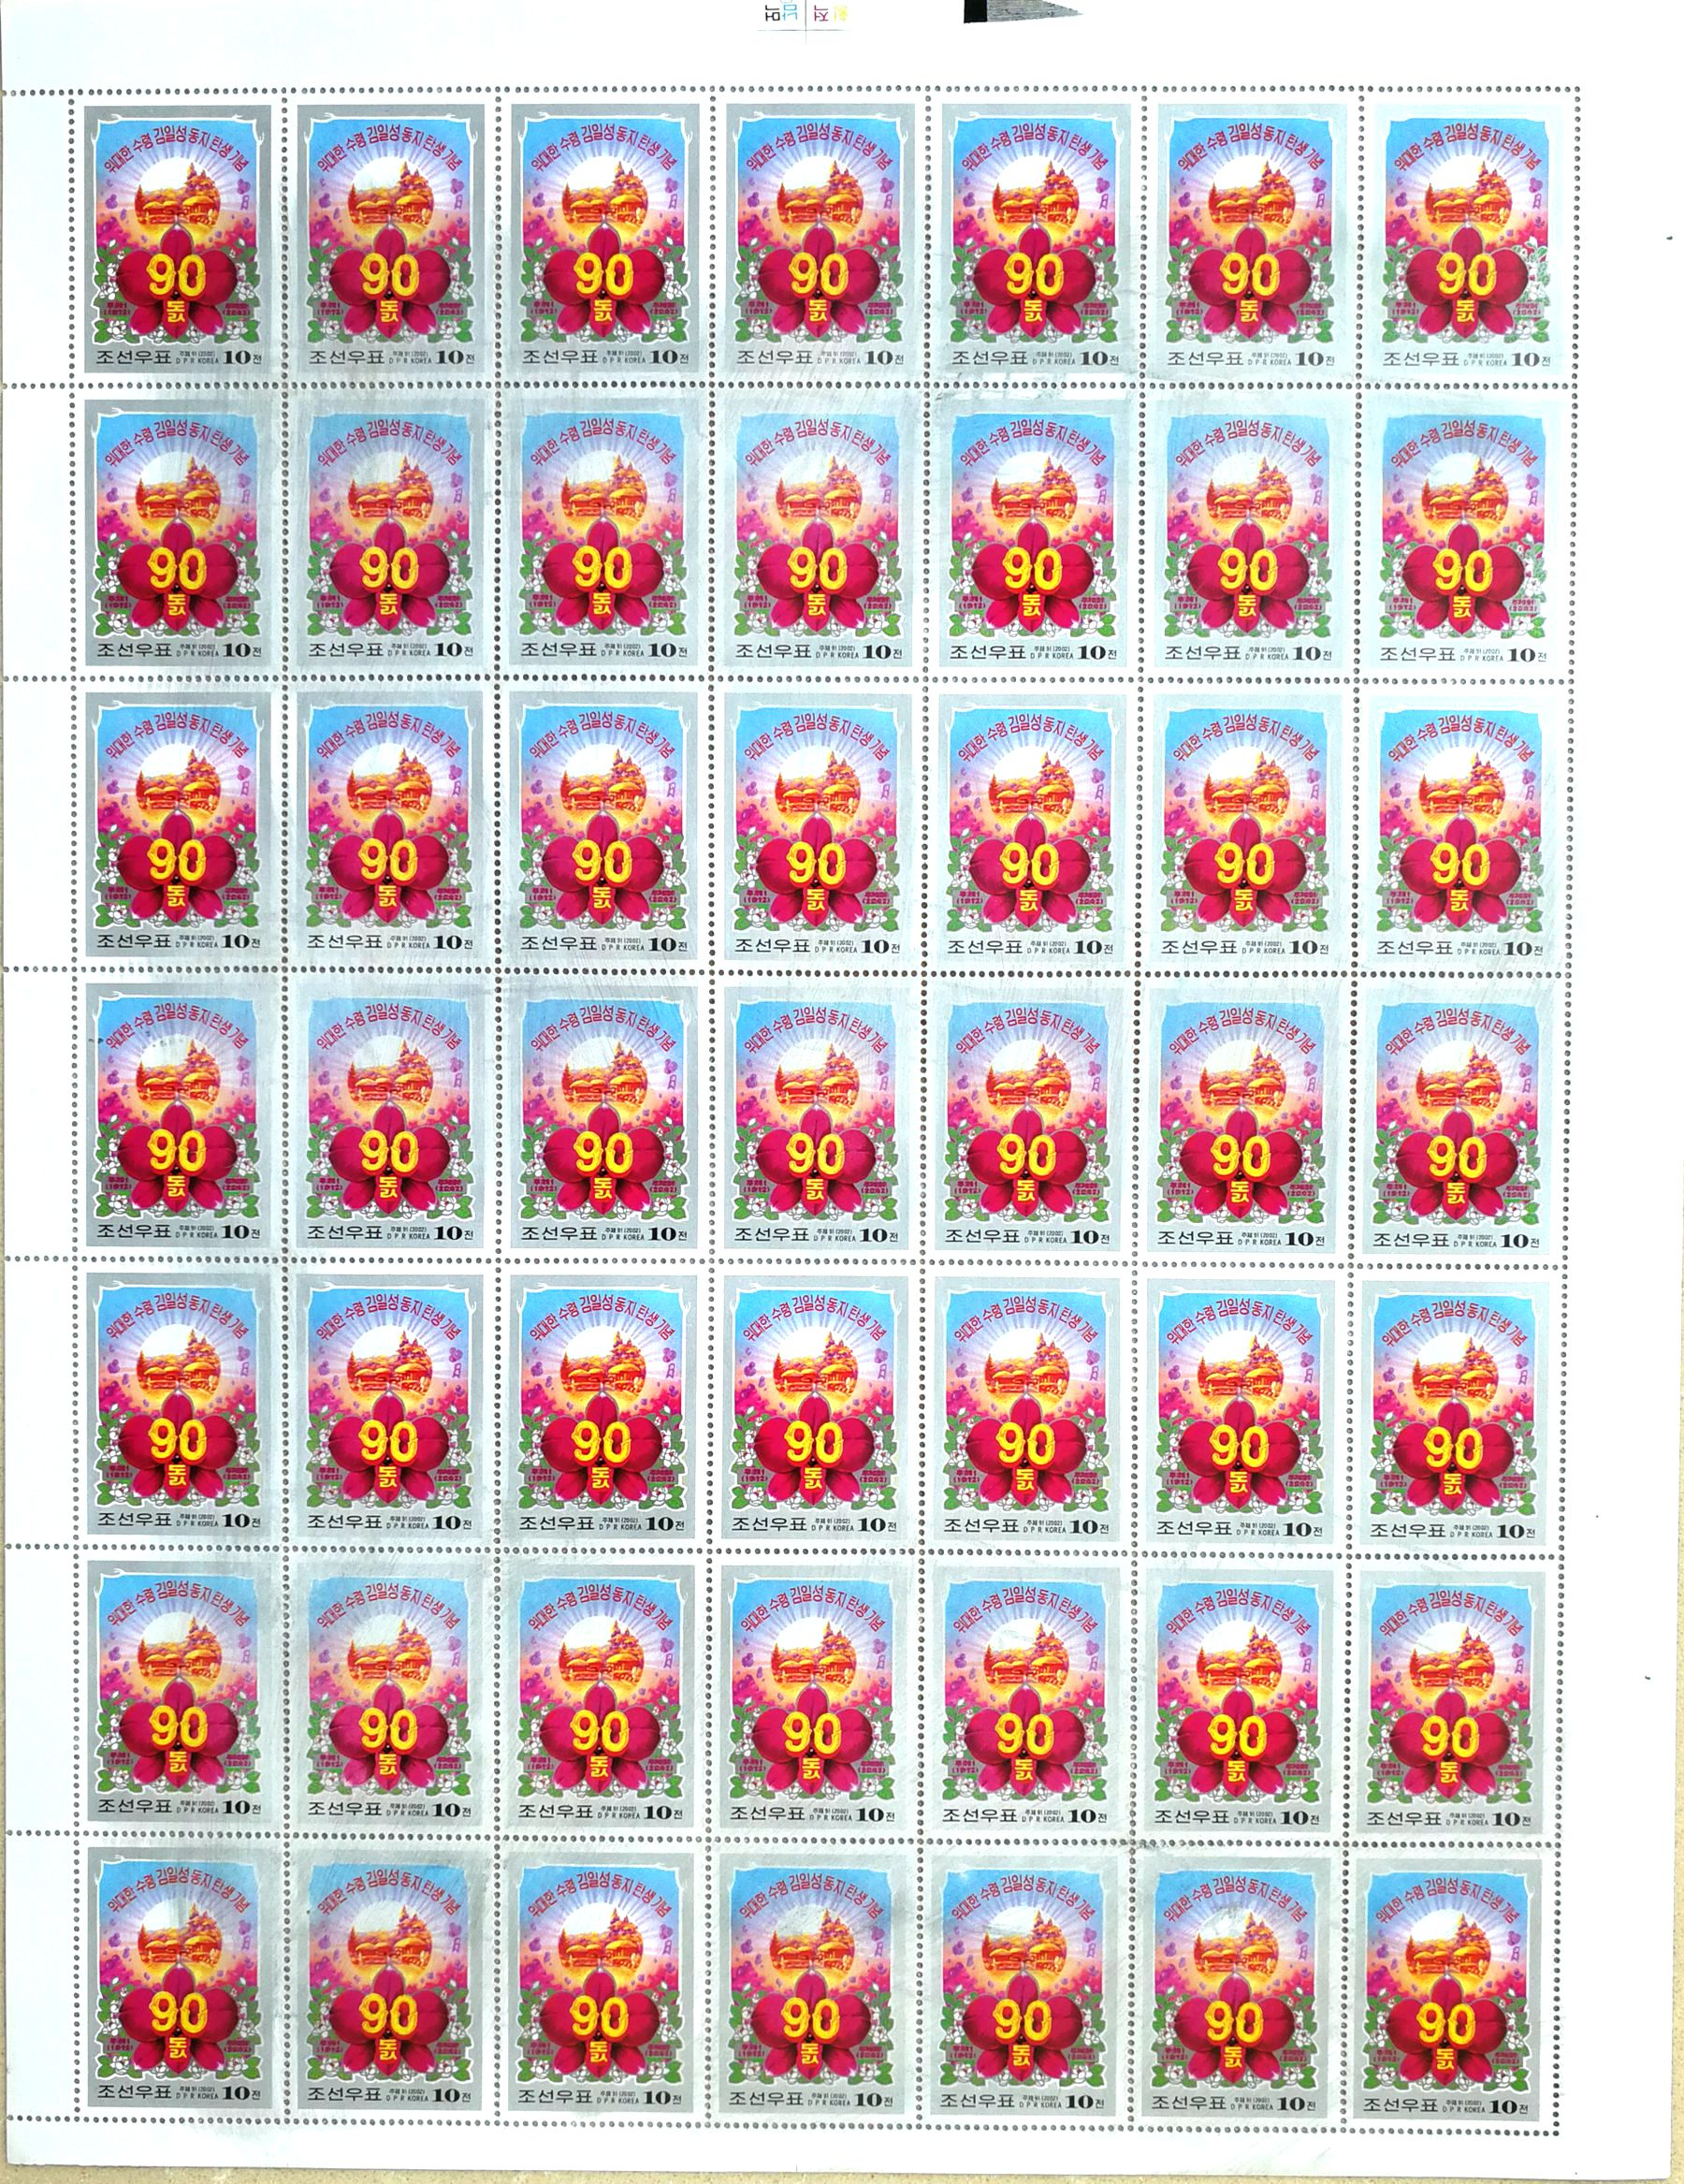 "L4474, Korea ""90th Birthday of Kim Il Sung"", Full Sheet of 49 Pcs Stamps, 2002"